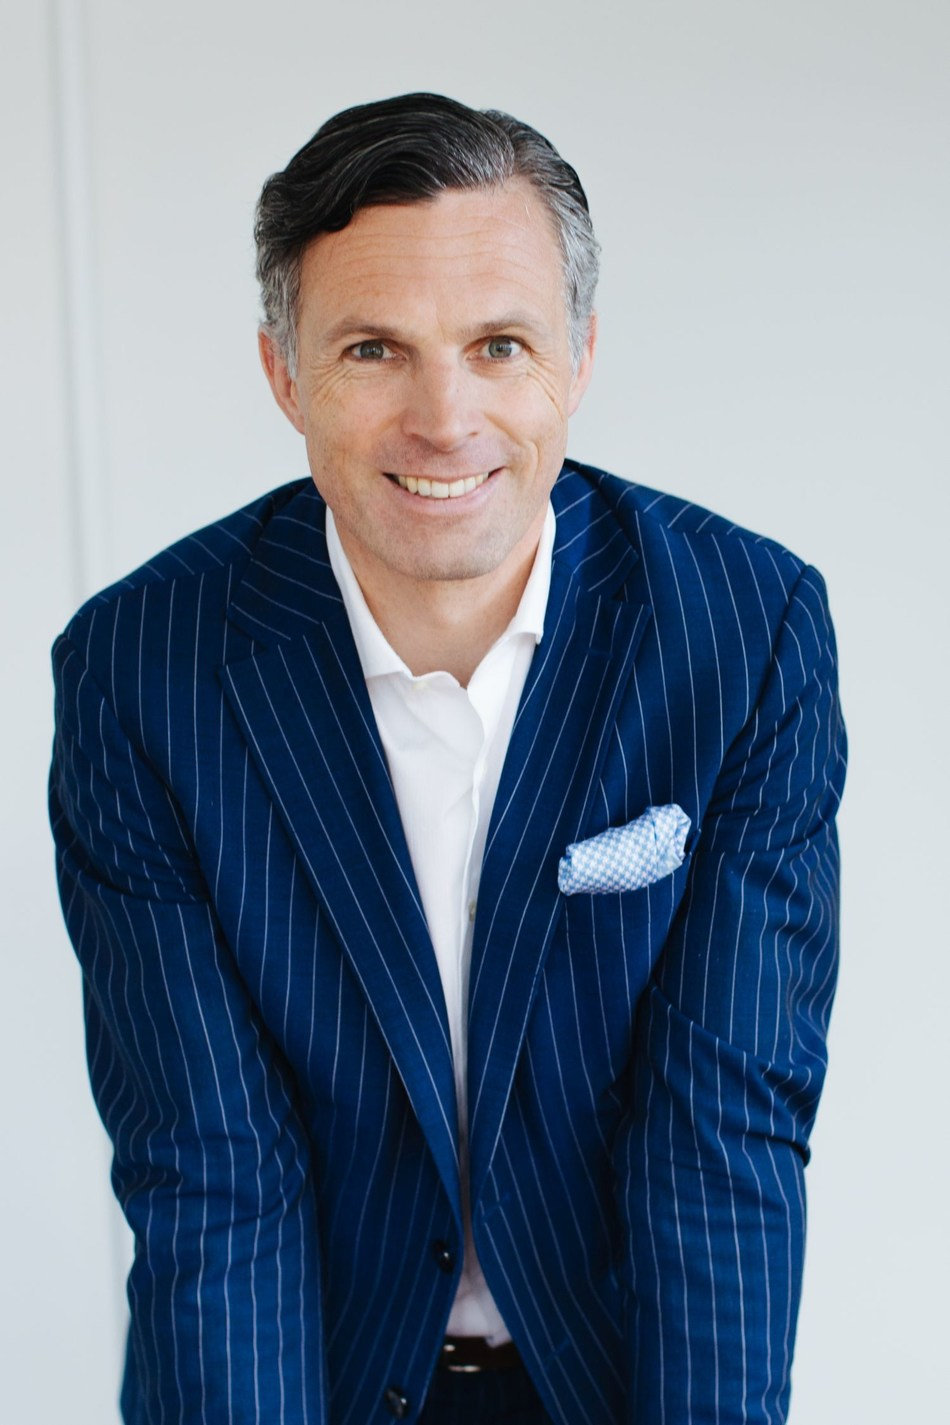 Frederic Laziou, CEO of Tacton Systems (PRNewsfoto/Tacton Systems)